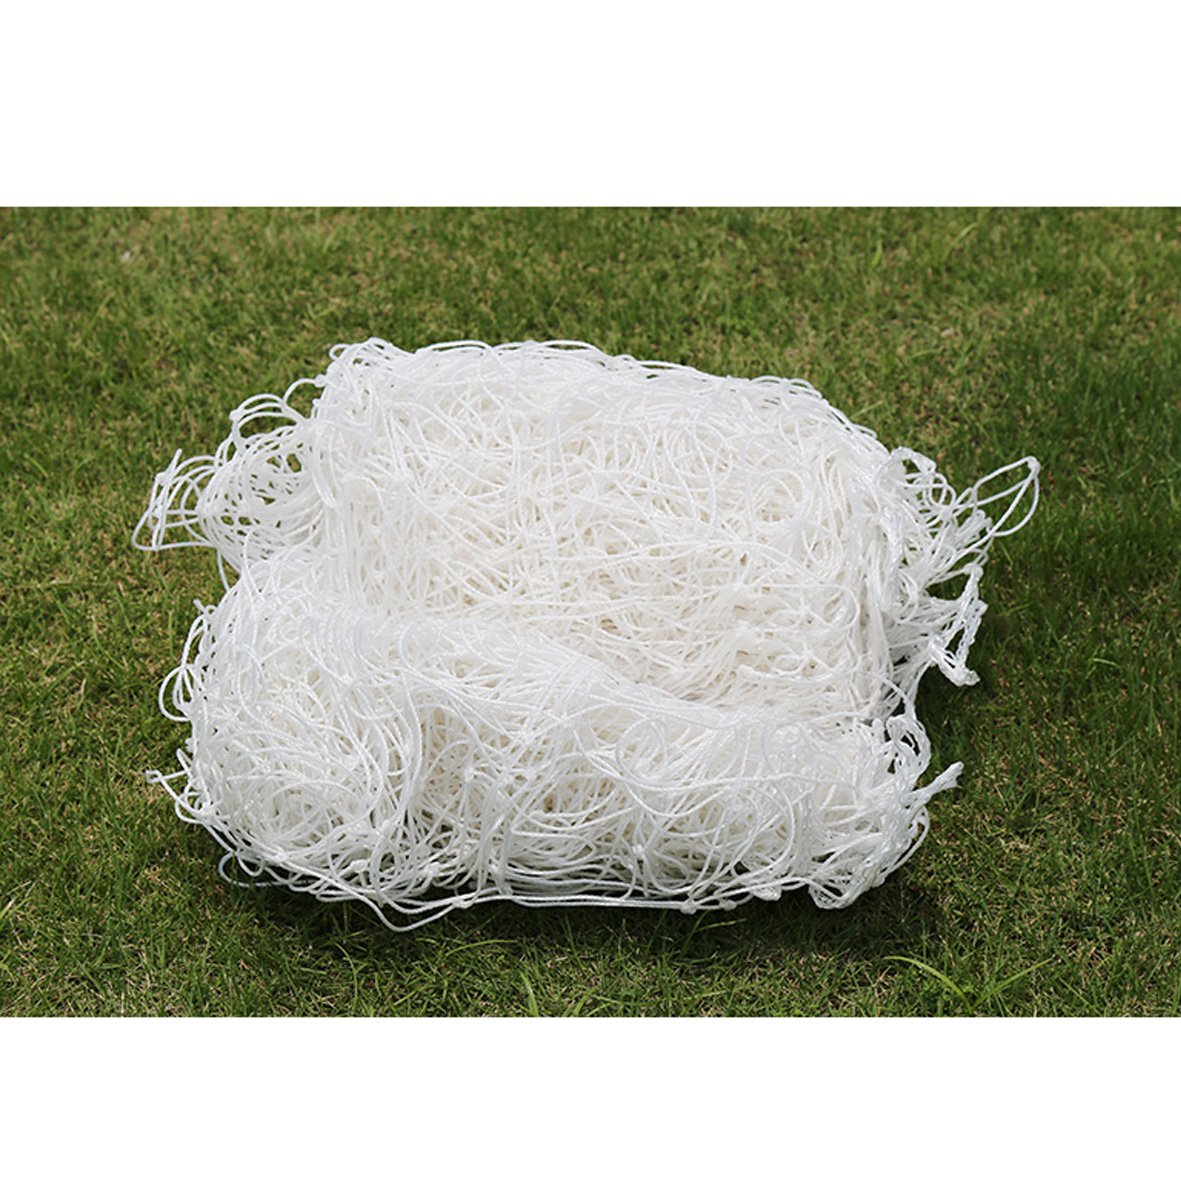 Strong Camel New Portable 24' x 8' Official Size Soccer goal Net Outdoor Football Training